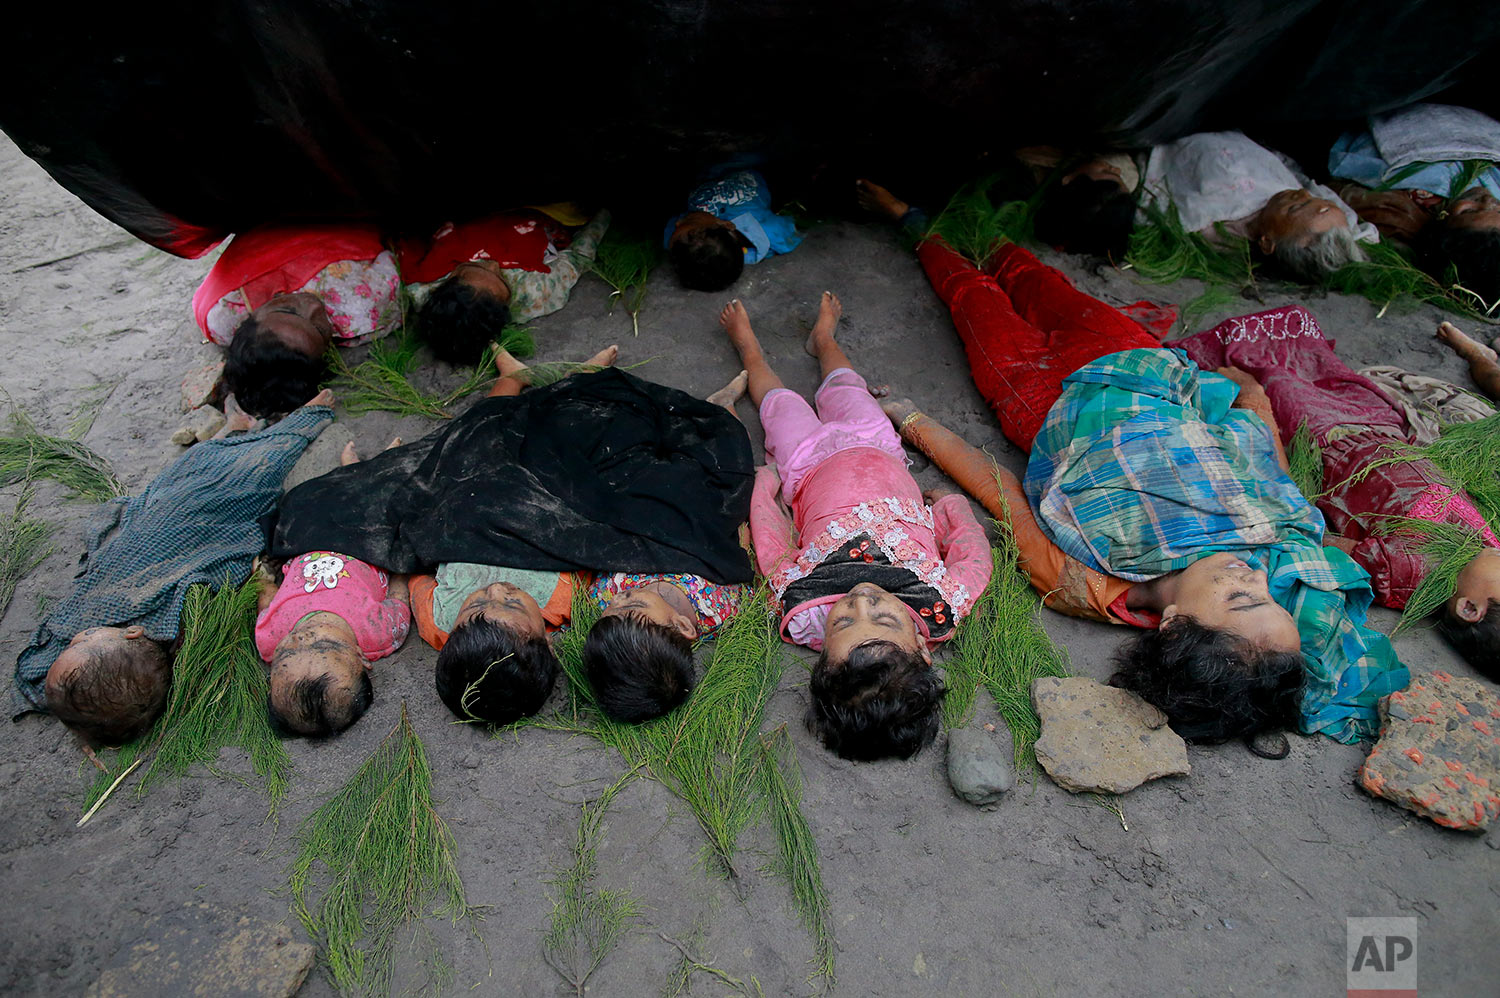 Bodies of Rohingya women and children recovered by Bangladeshi villagers lie on a beach at Shah Porir Deep, in Teknak, Bangladesh, Thursday, Aug.31, 2017. Three boats carrying ethnic Rohingya fleeing violence in Myanmar have capsized in Bangladesh and 26 bodies of women and children have been recovered, officials said Thursday. (AP Photo/Suvra Kanti Das)